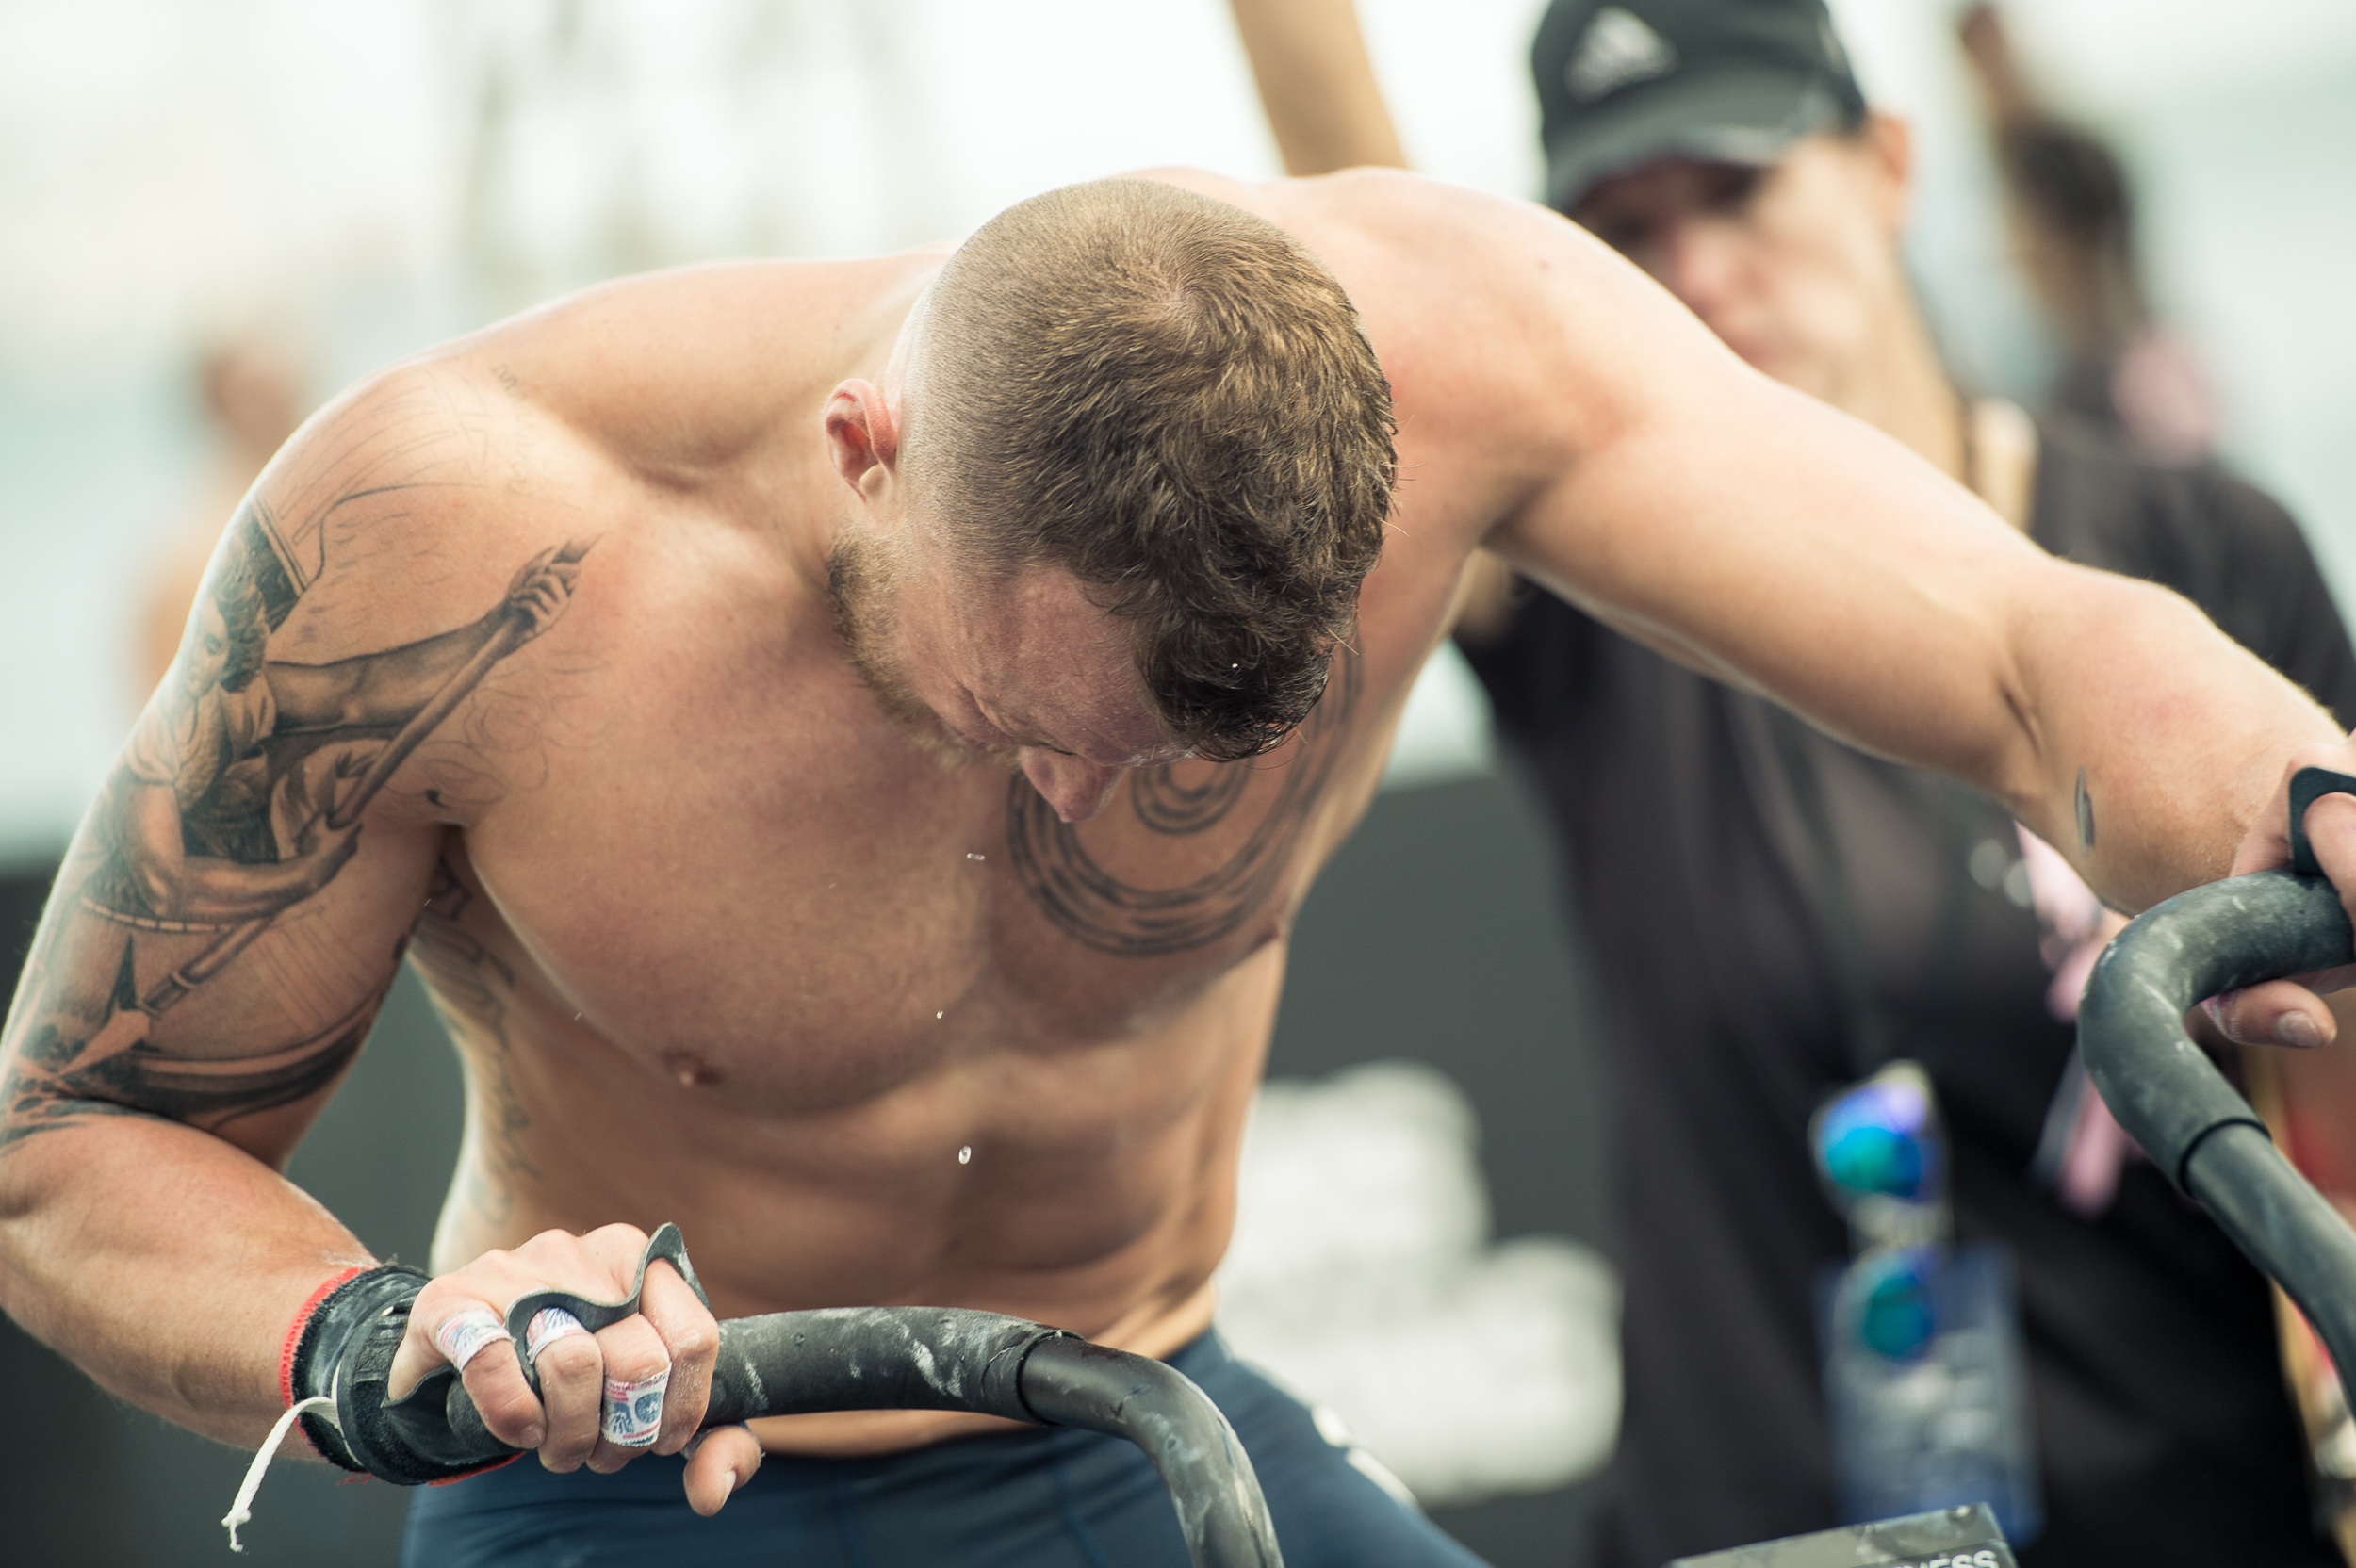 2018 Wodapalooza - Day 1, Photo Alessio Neri-001-45.jpg